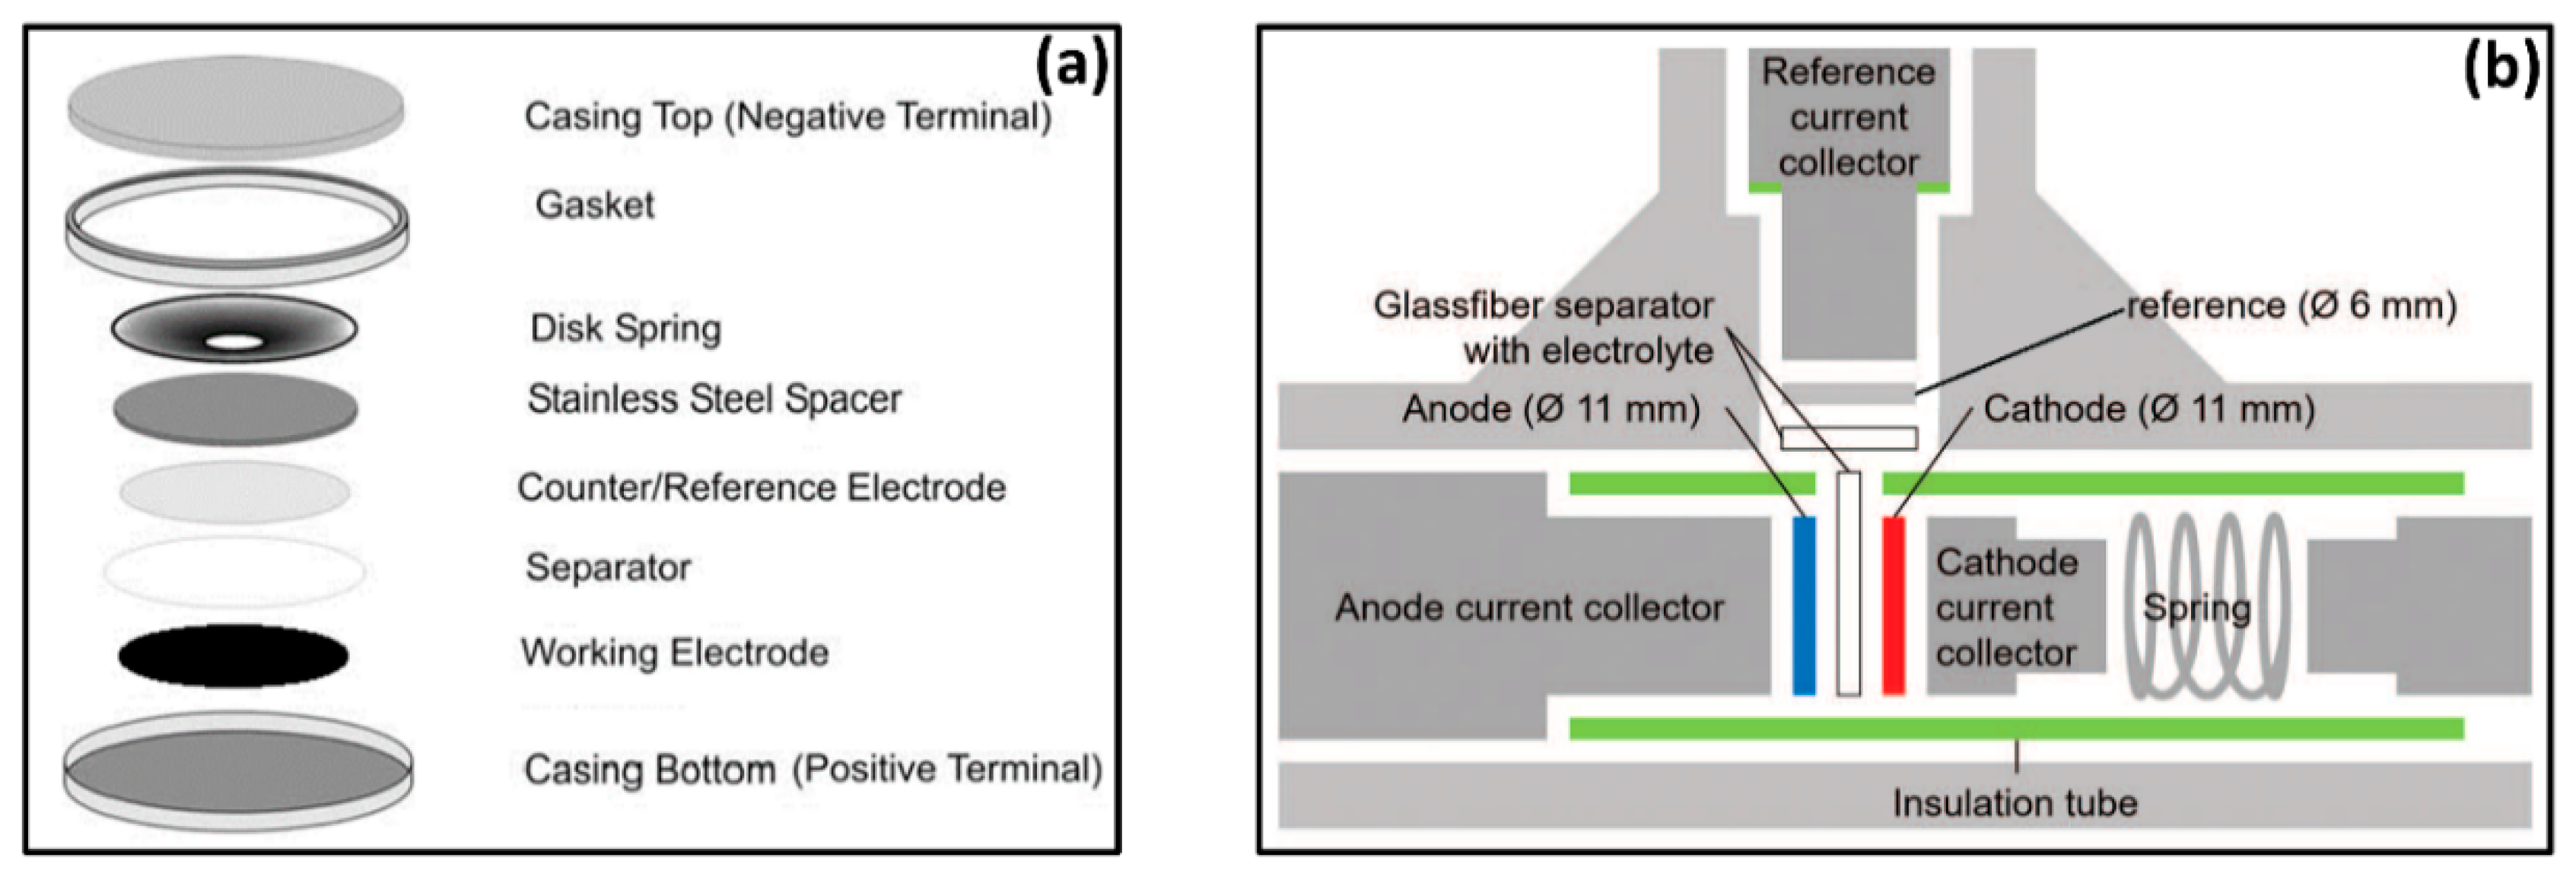 Critical Impact of Chloride Containing Reference Electrodes on Electrochemical Measurements